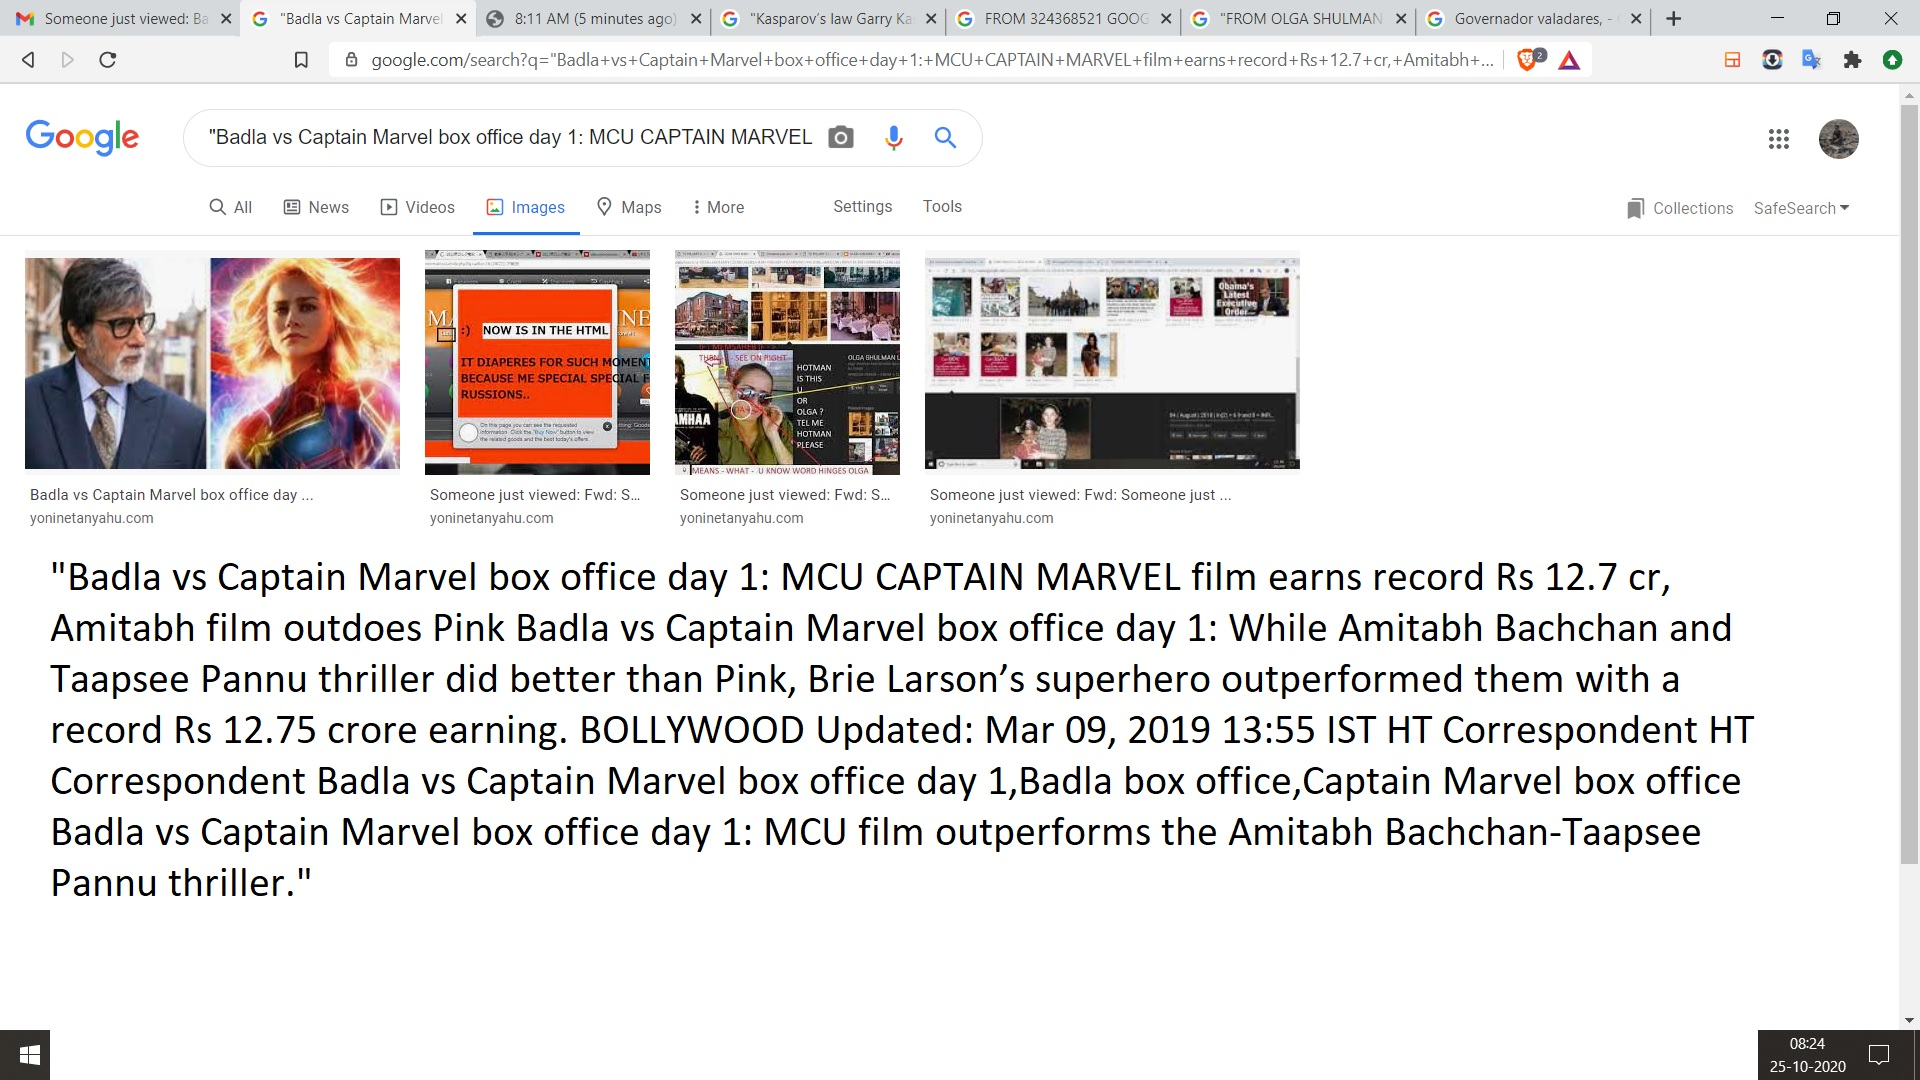 """Badla vs Captain Marvel box office day 1: MCU CAPTAIN MARVEL film earns record Rs 12.7 cr, Amitabh film outdoes Pink Badla vs Captain Marvel box office day 1: While Amitabh Bachchan and Taapsee Pannu thriller did better than Pink, Brie Larson's superhero outperformed them with a record Rs 12.75 crore earning. BOLLYWOOD Updated: Mar 09, 2019 13:55 IST HT Correspondent HT Correspondent Badla vs Captain Marvel box office day 1,Badla box office,Captain Marvel box office Badla vs Captain Marvel box office day 1: MCU film outperforms the Amitabh Bachchan-Taapsee Pannu thriller."""